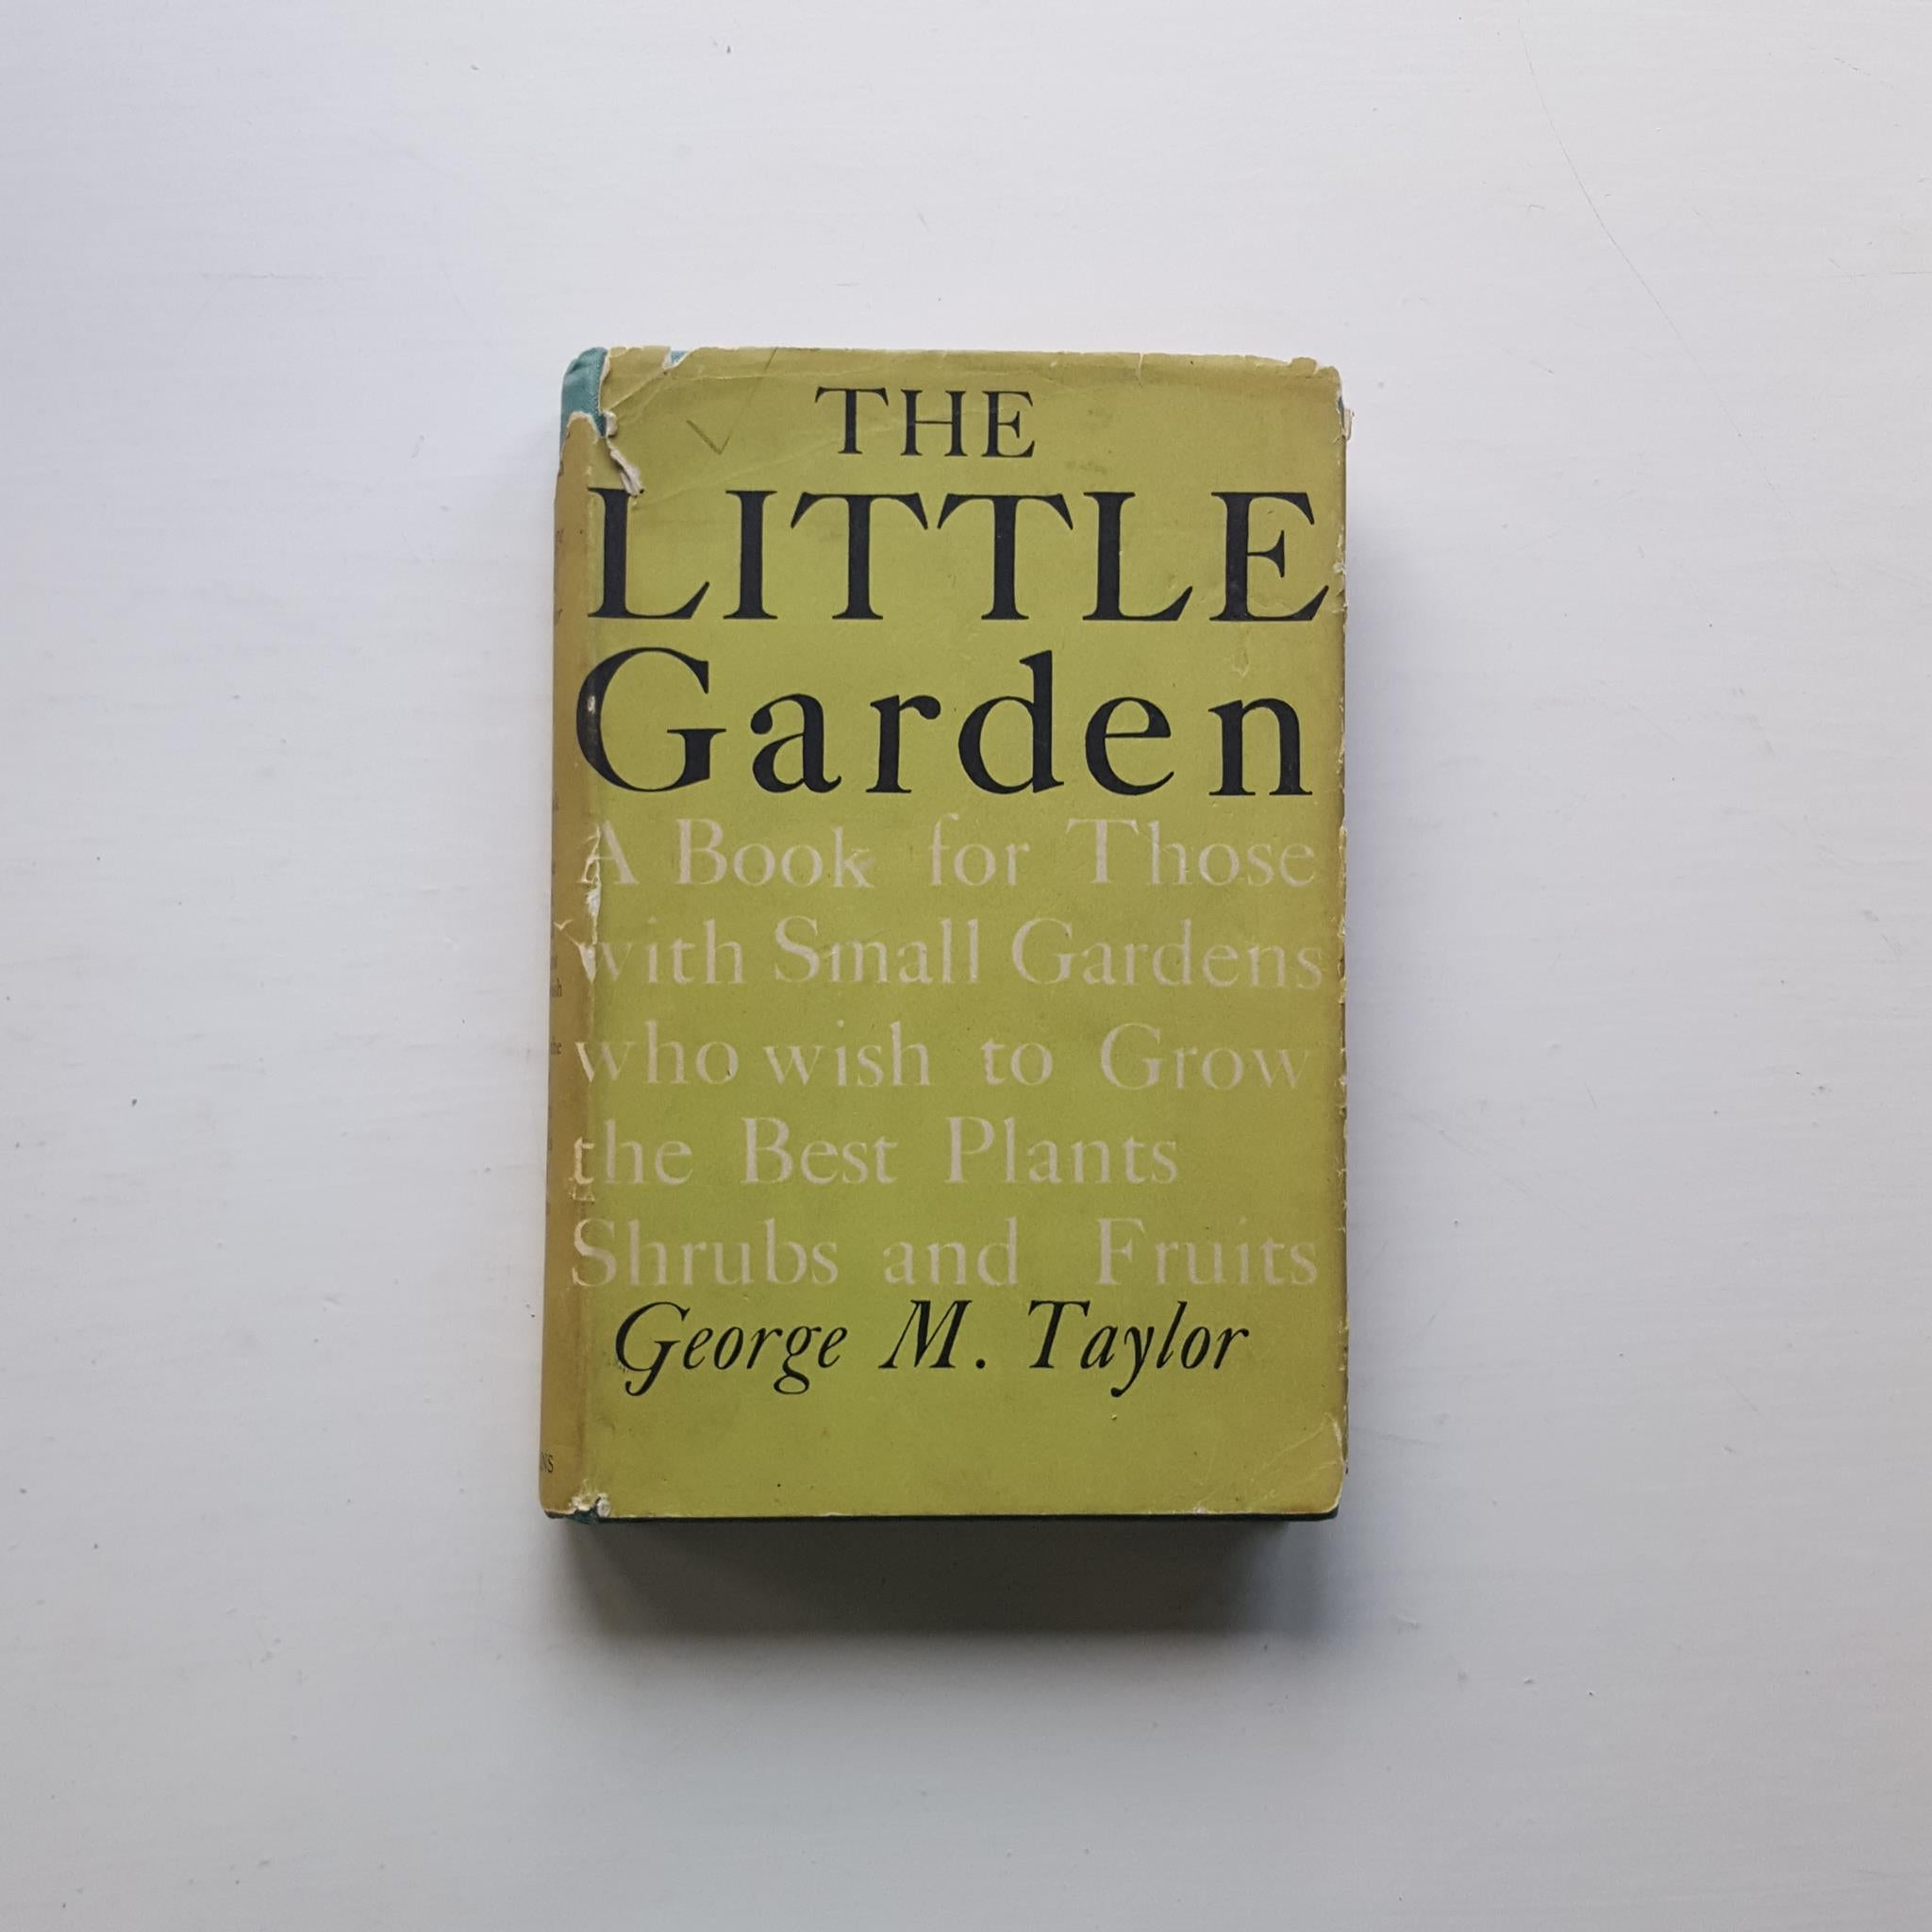 The Little Garden by George M. Taylor